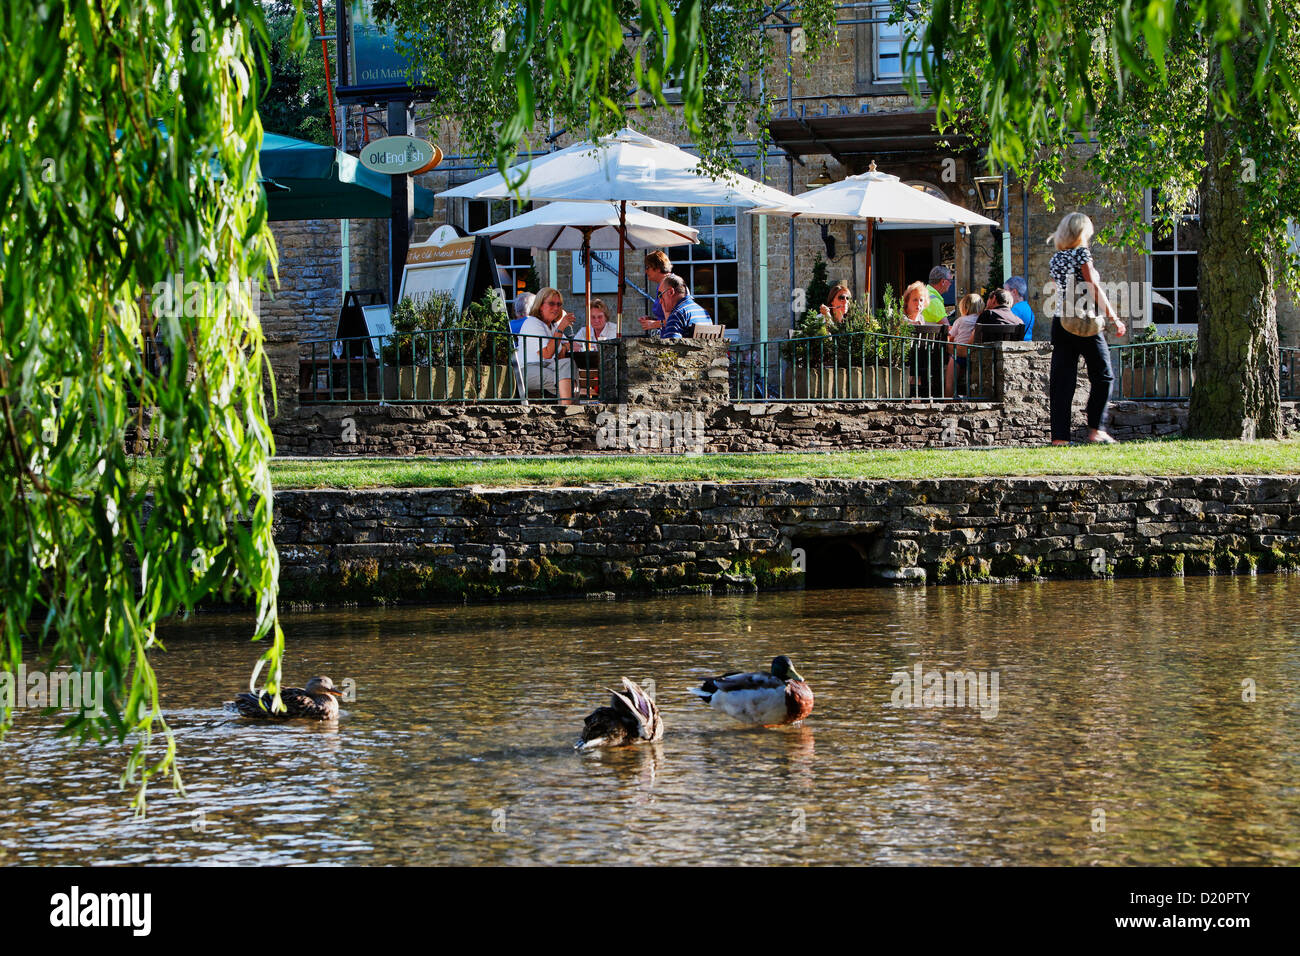 Cafe of the Olde Manse Hotel on the banks of Windrush river, Bourton-on-the-water, Gloucestershire, Cotswolds, England, - Stock Image